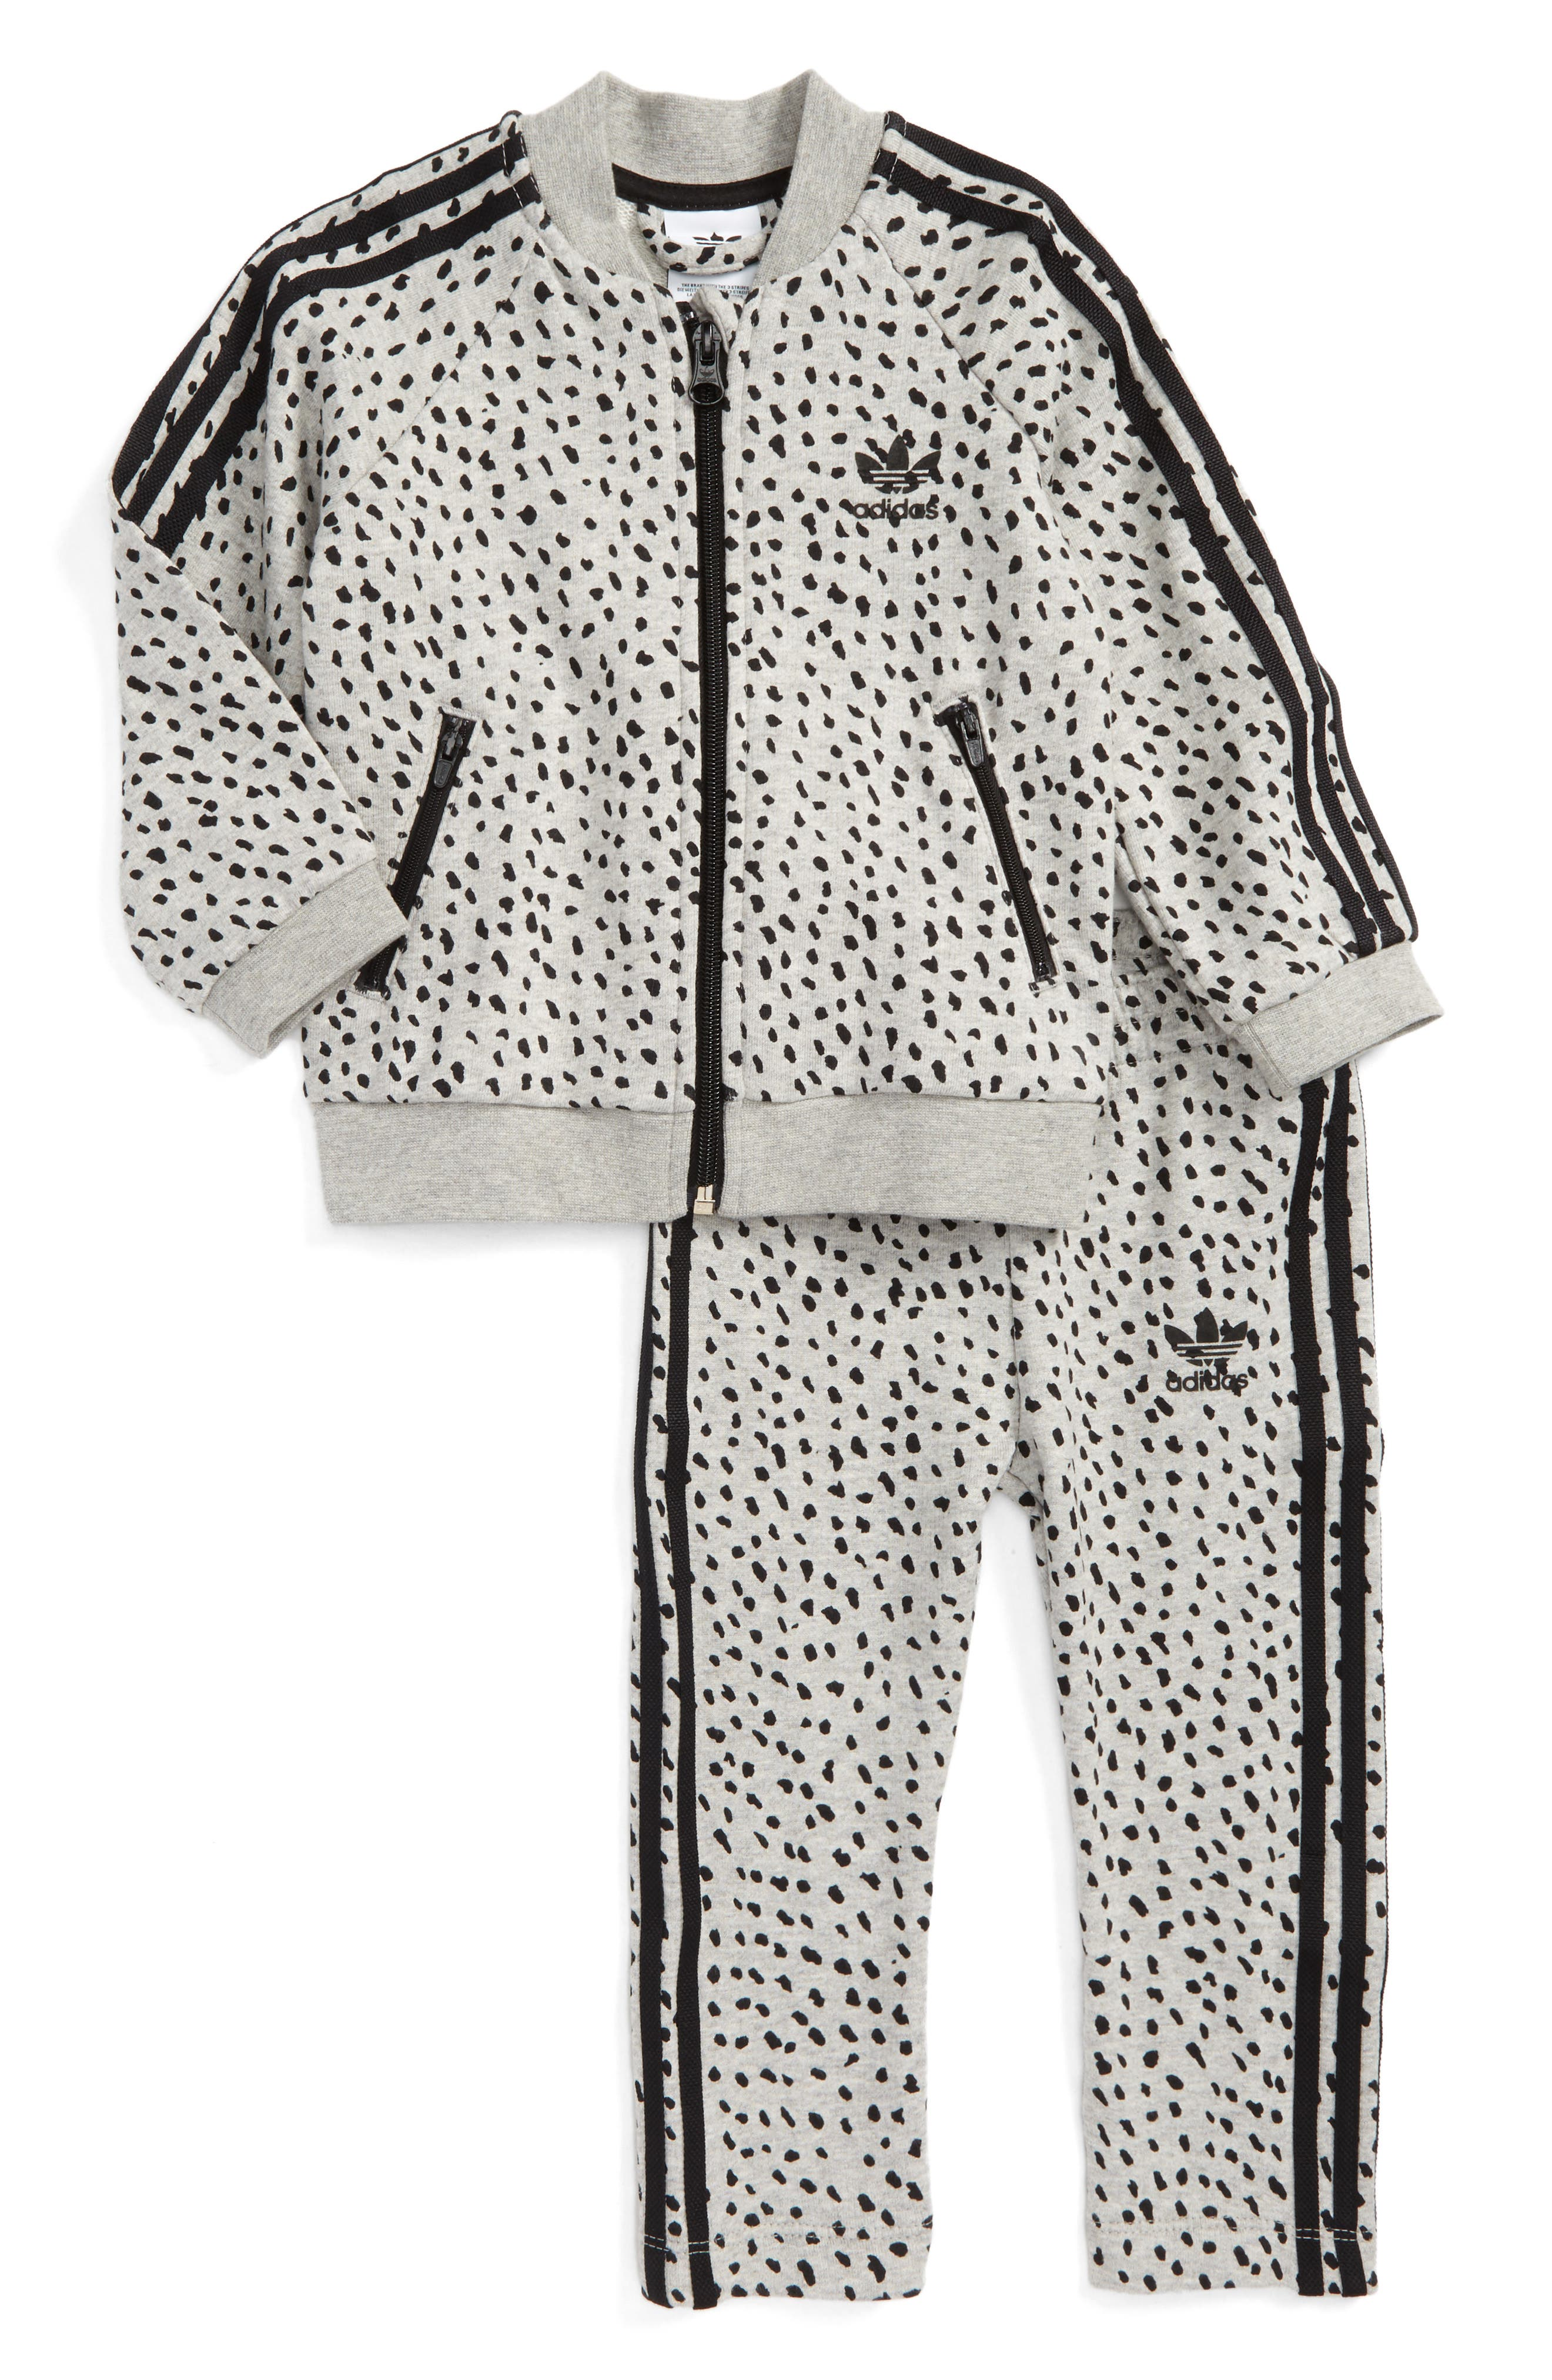 Main Image - adidas Originals NMD Superstar Track Jacket & Pants Set (Baby)